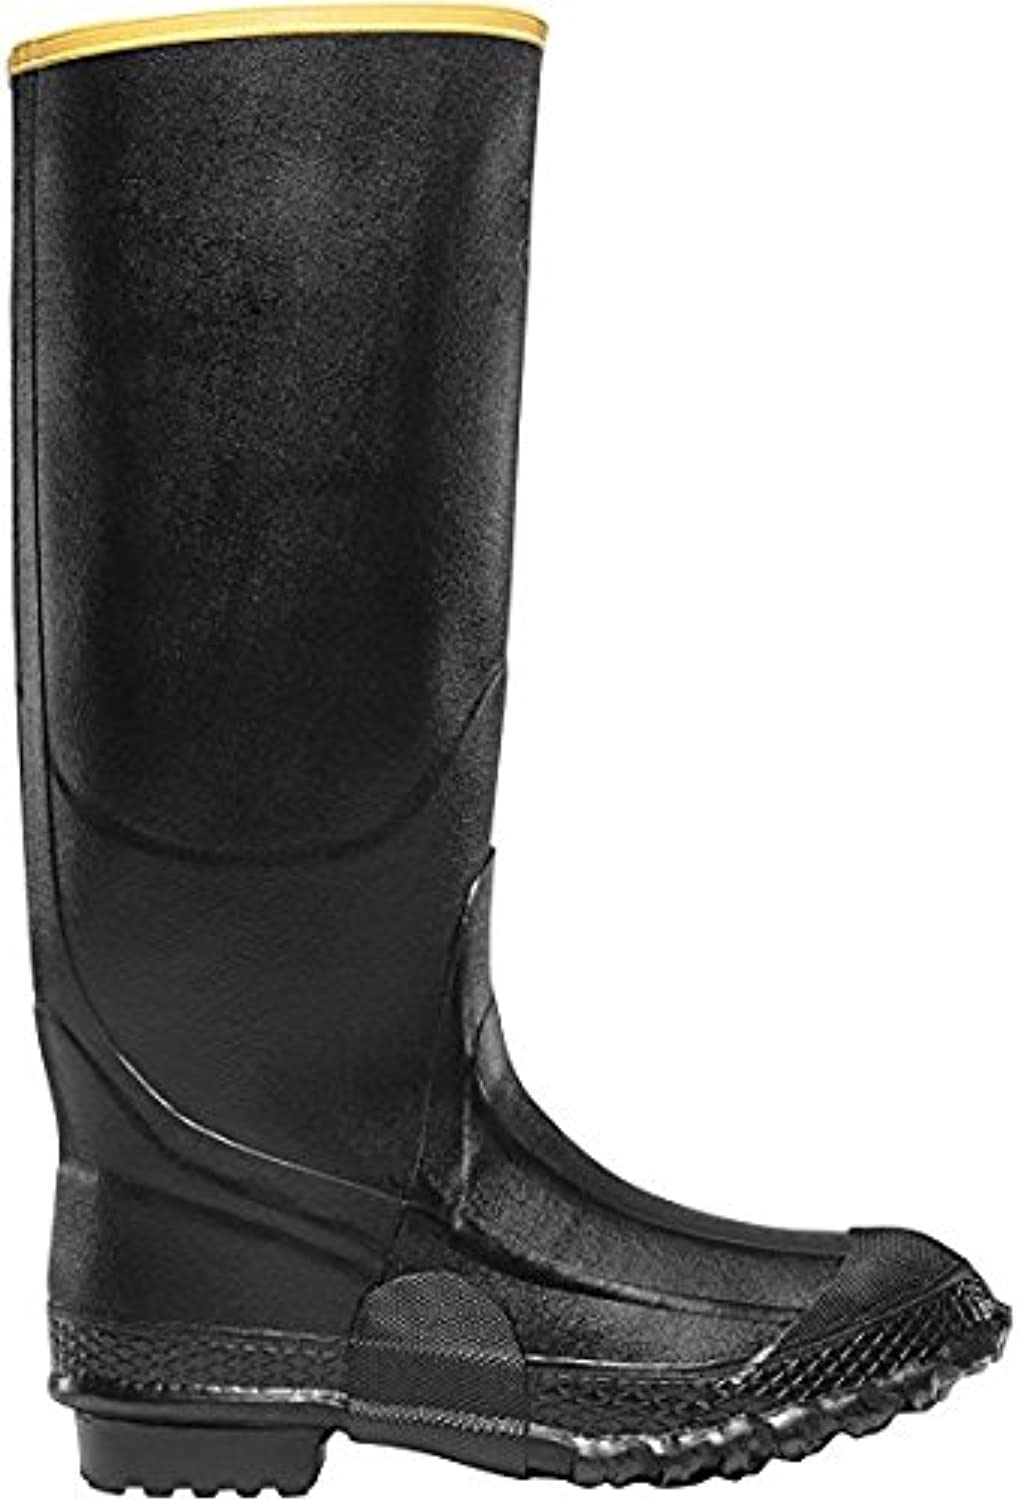 LACROSSE ZXT Knee Boot 16  Black (267180)   Waterproof   Insulated Modern Comfortable Hunting Combat Boot